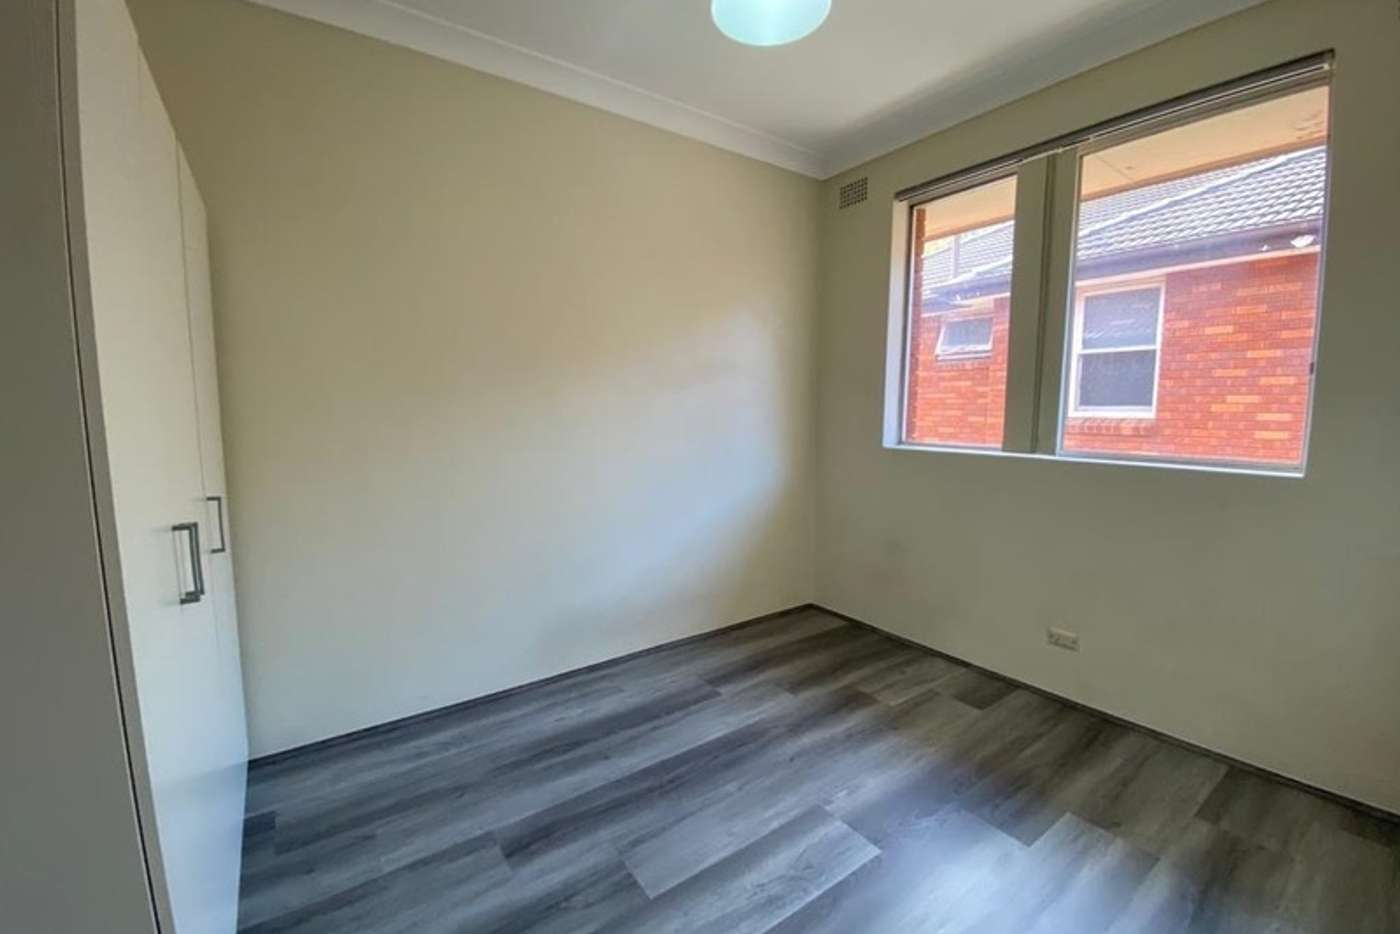 Seventh view of Homely apartment listing, 6/14 Willeroo Street, Lakemba NSW 2195